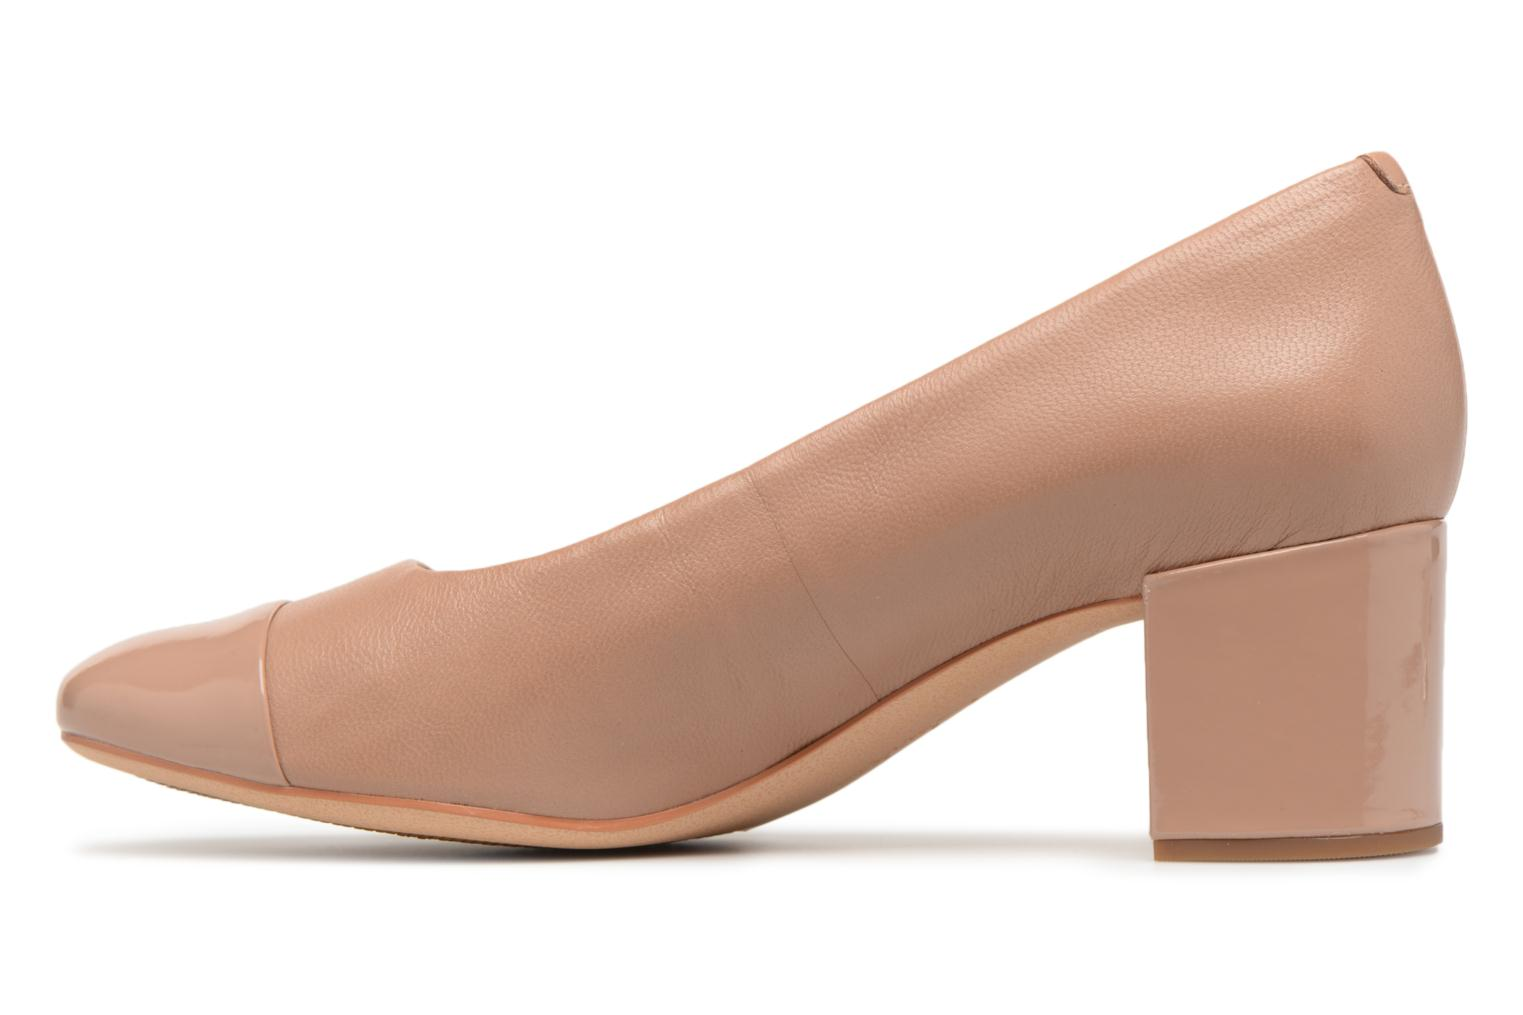 Orabella Mia Nude leather